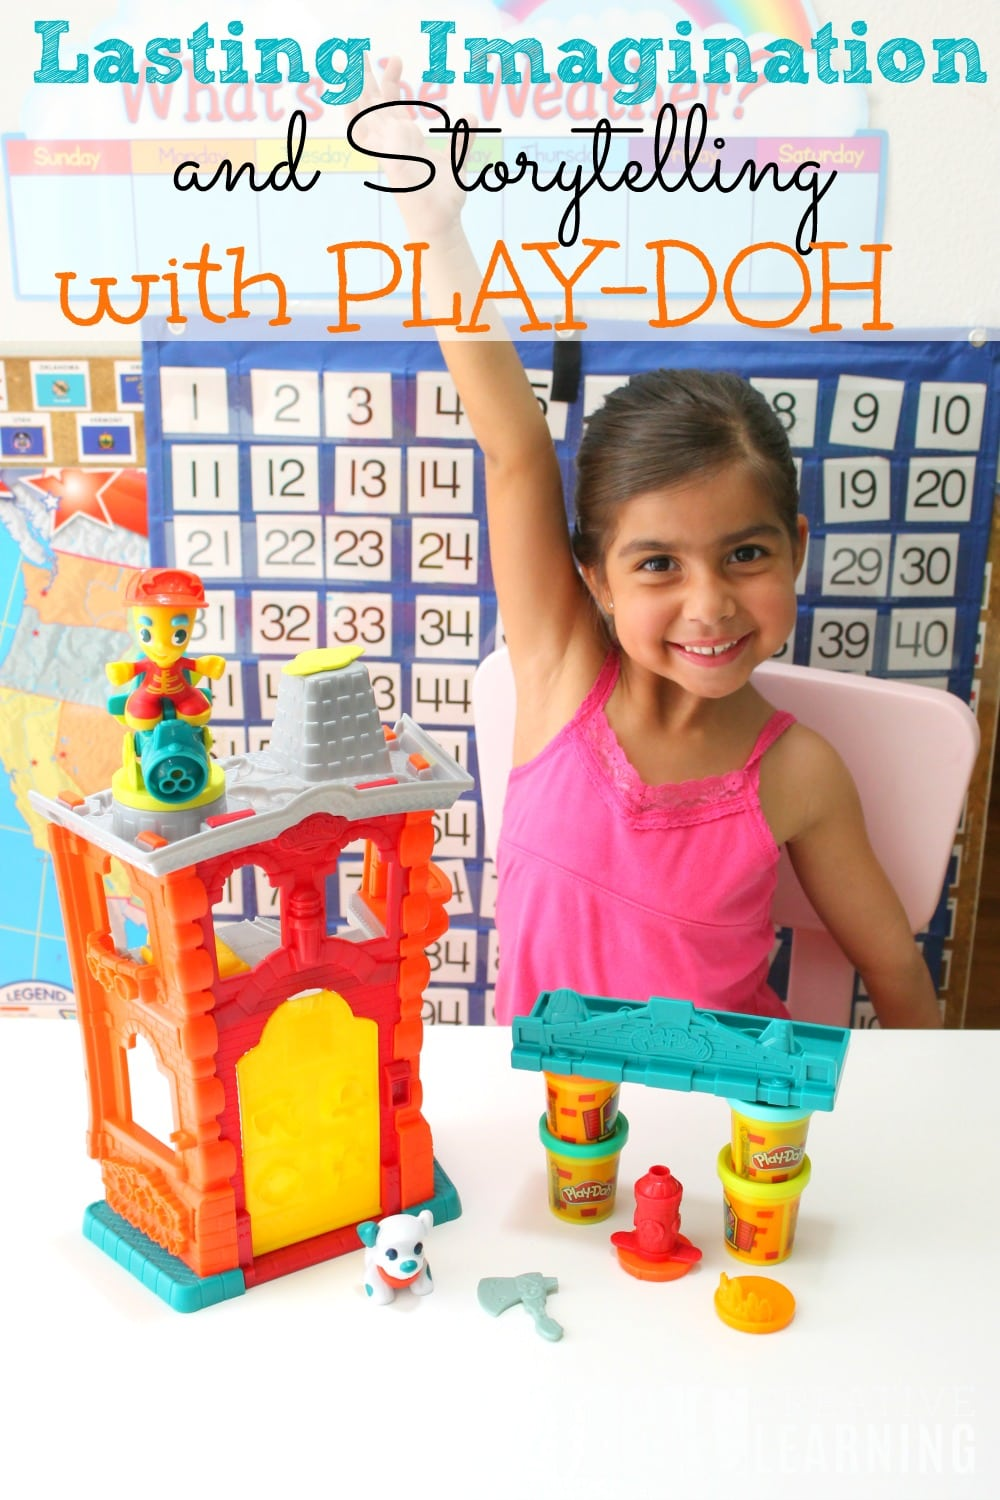 Lasting Imagination and Storytelling with Play Doh